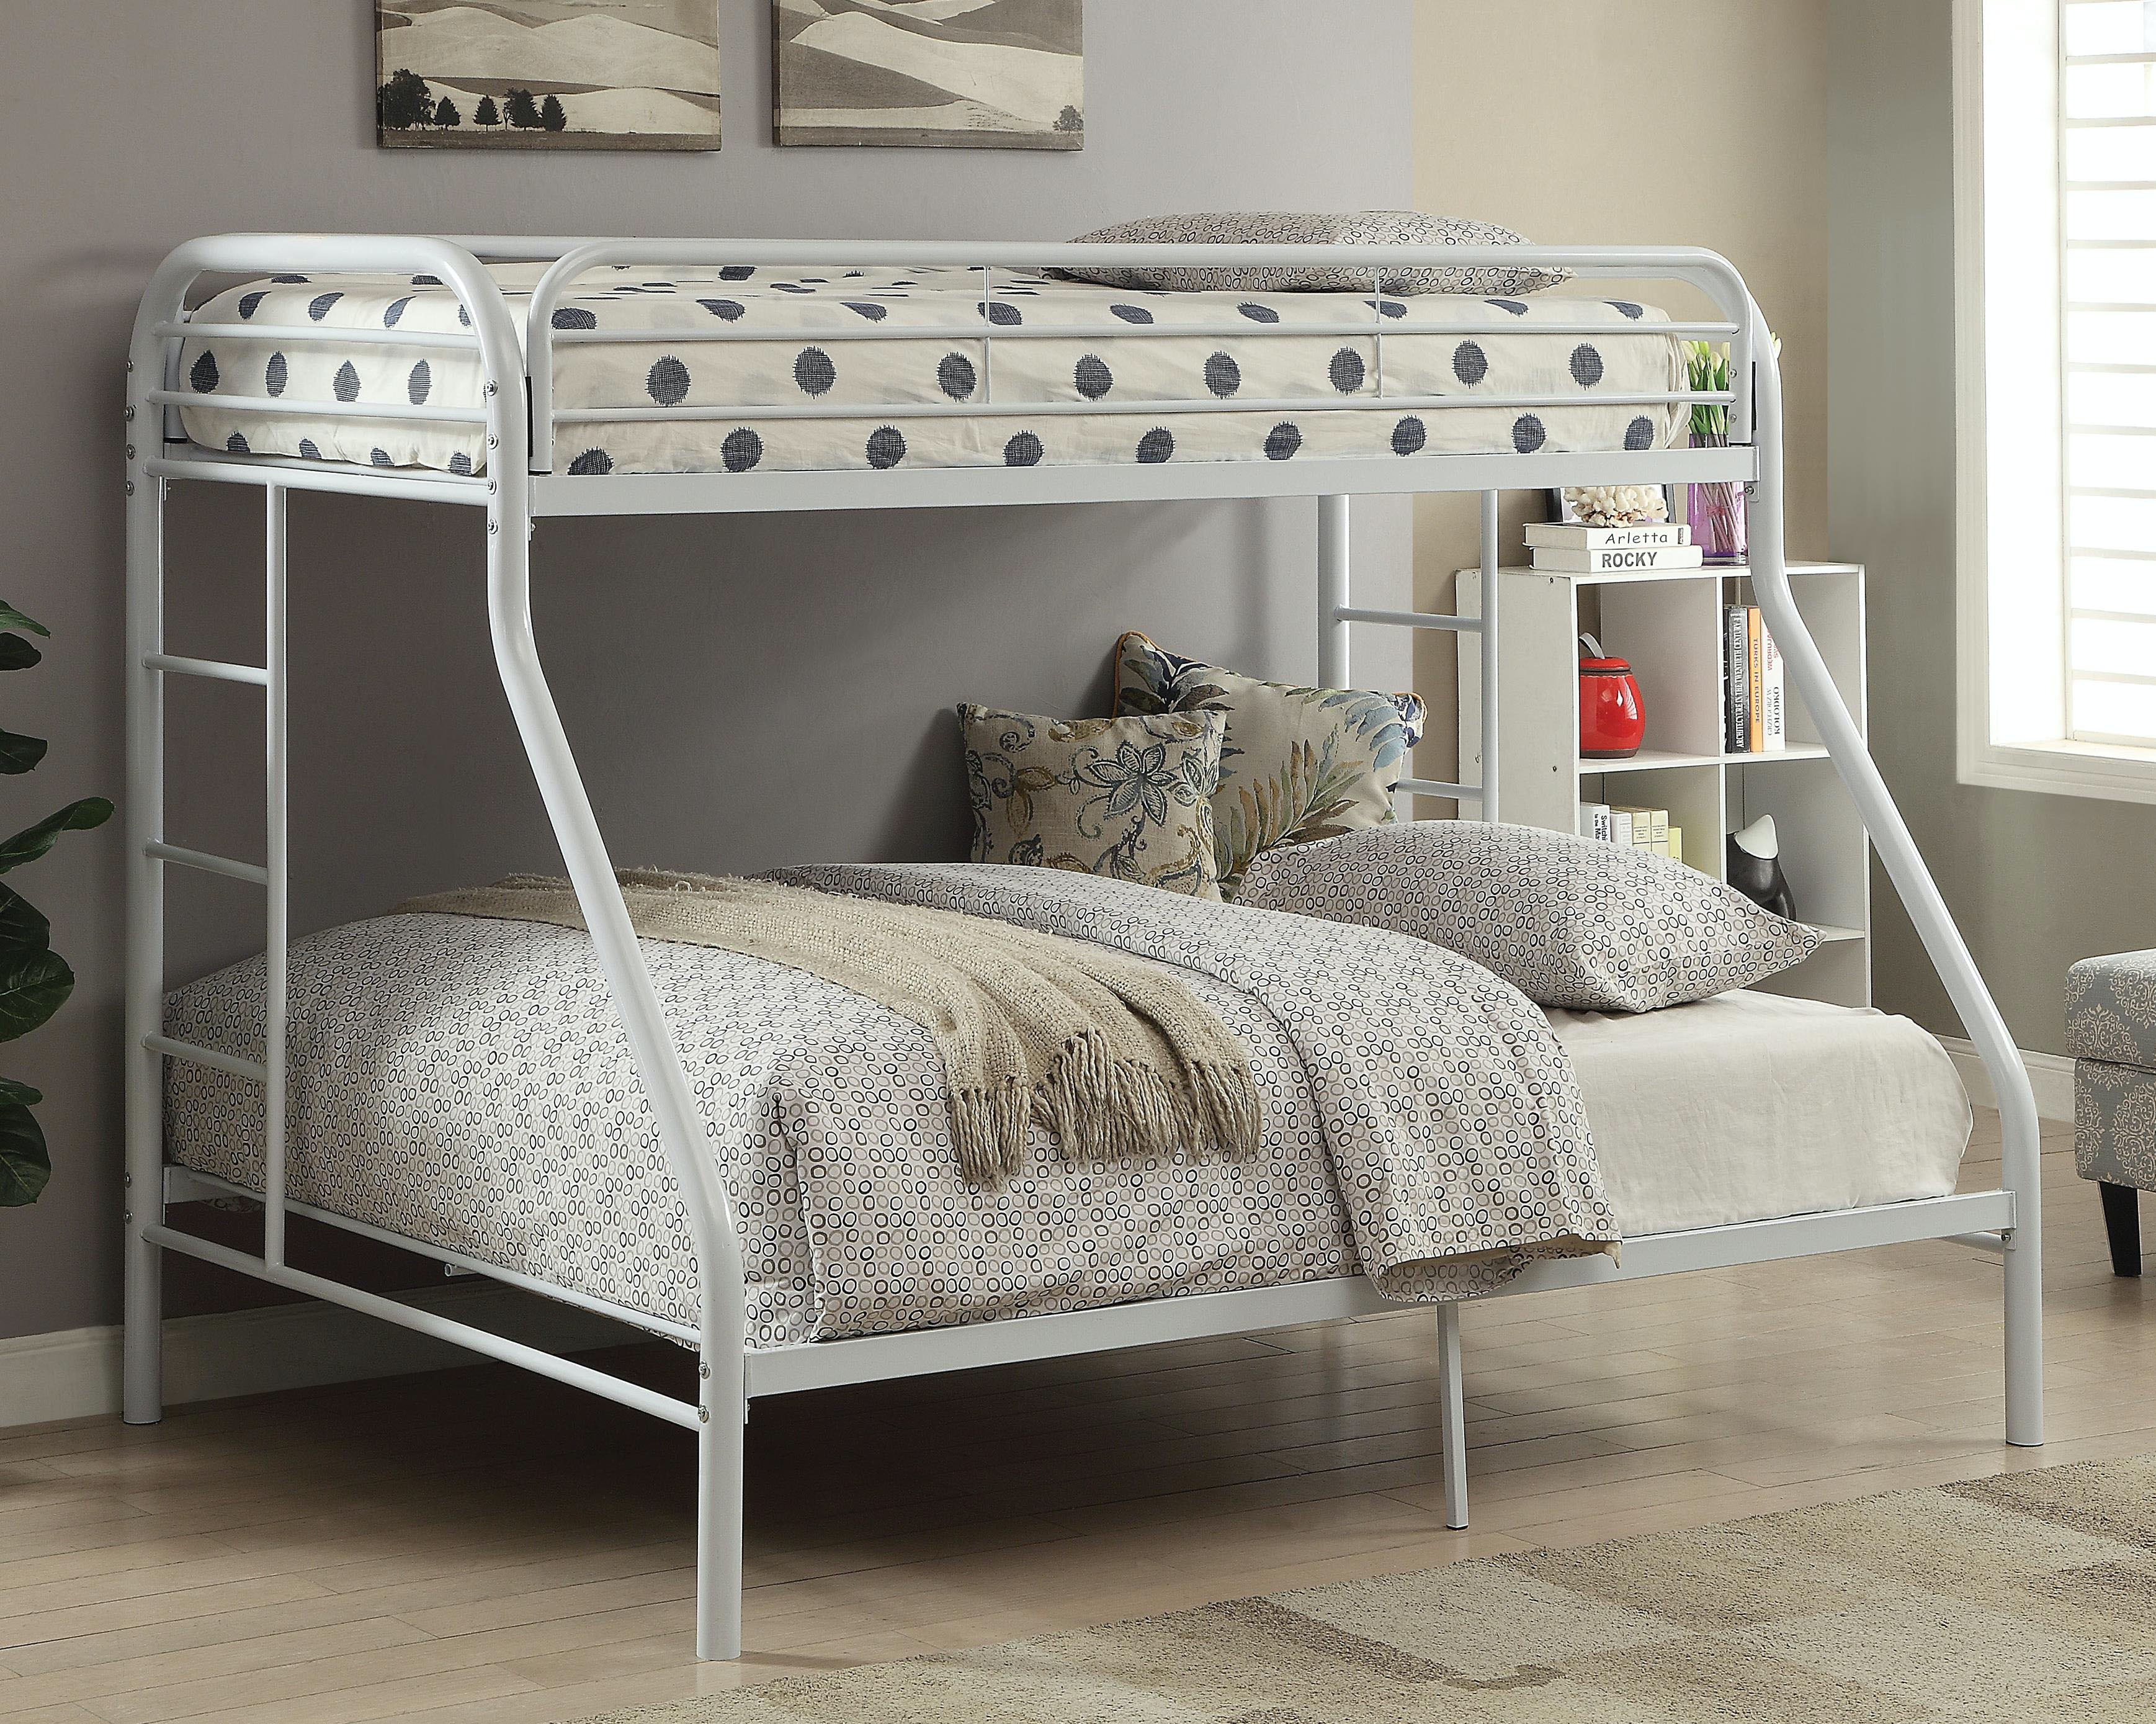 Acme Furniture Youth Bedroom Tritan Twin XL Over Queen Bunk Bed